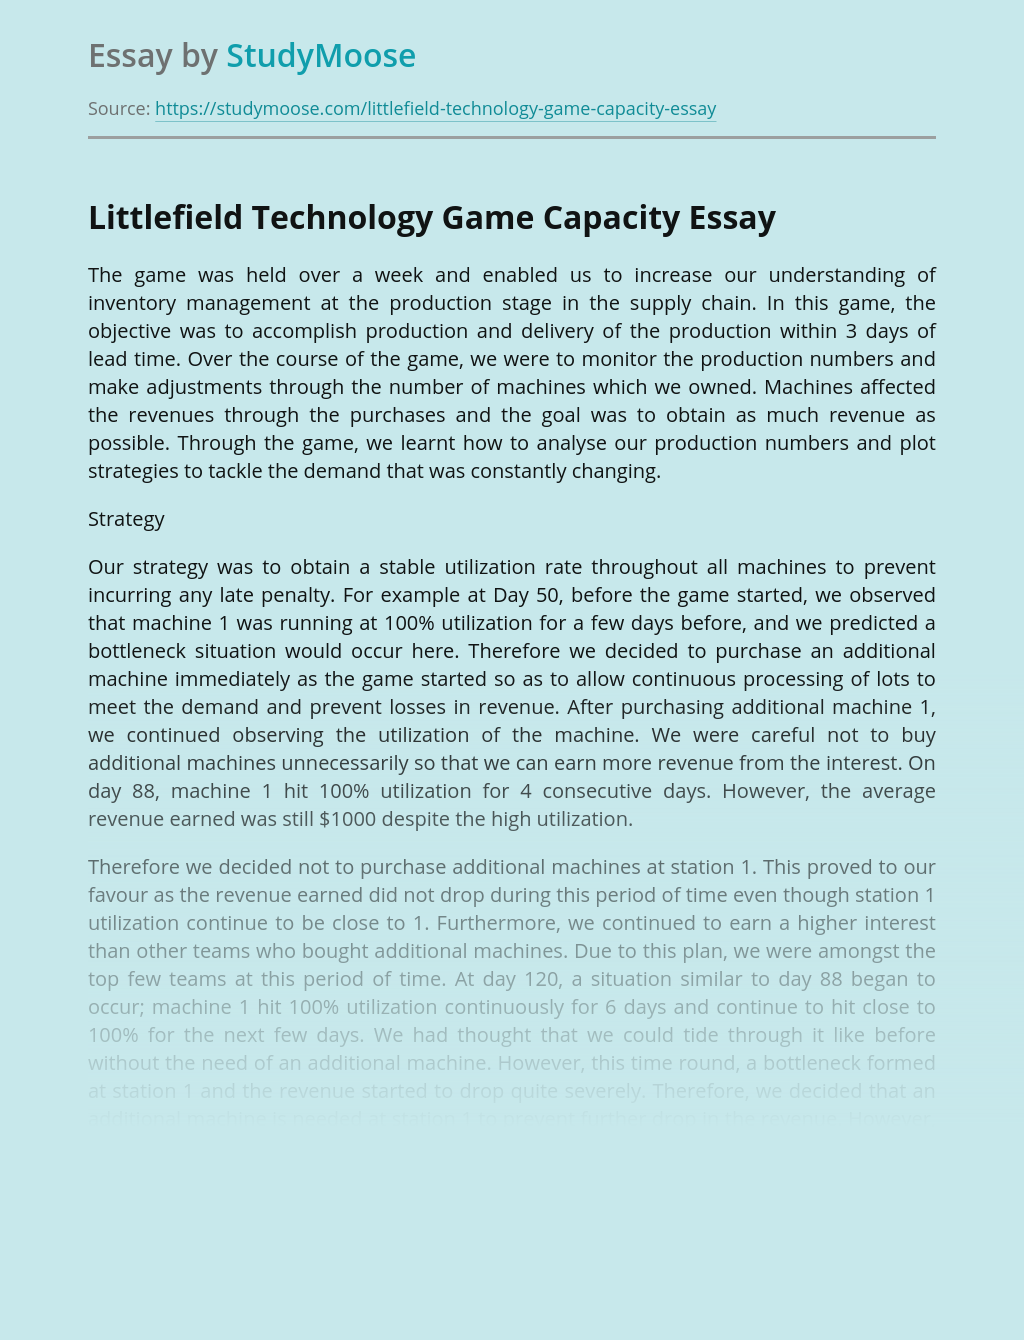 Littlefield Technology Game Capacity